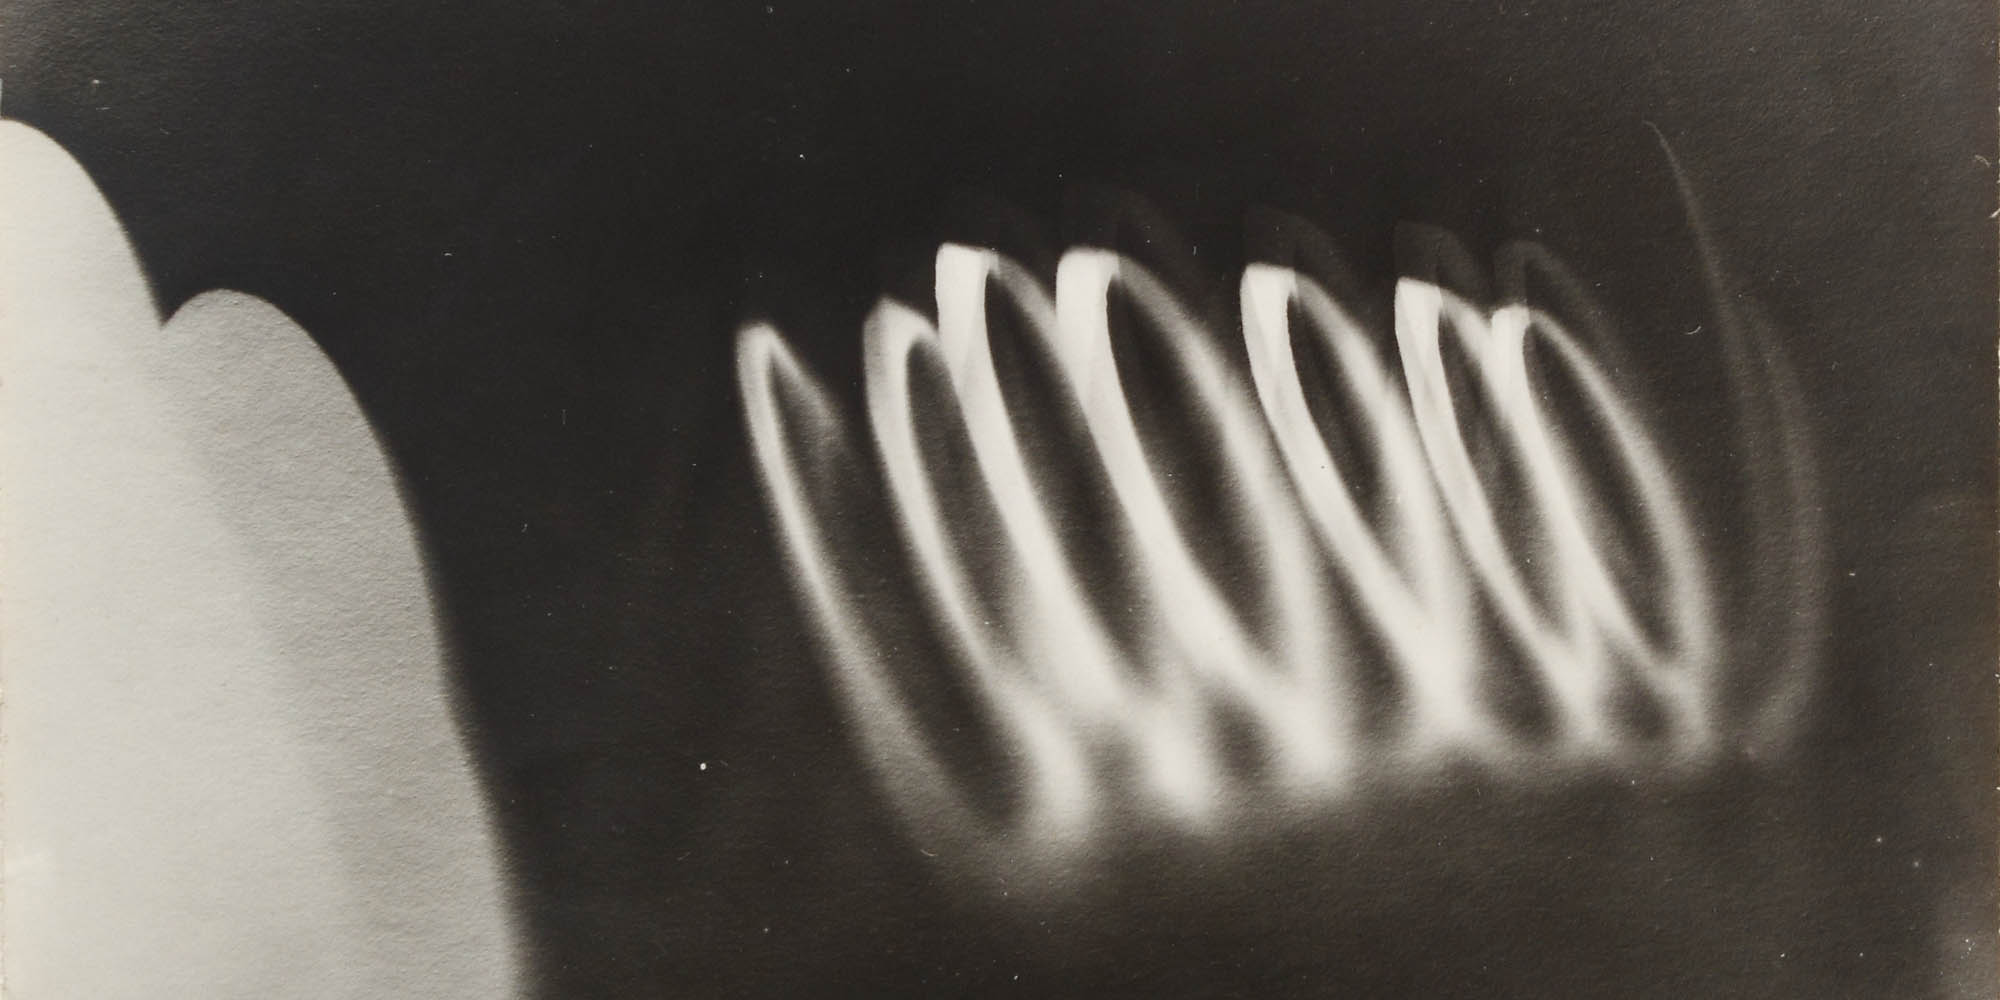 Image of a white coil shape leaning to the left on a black background.